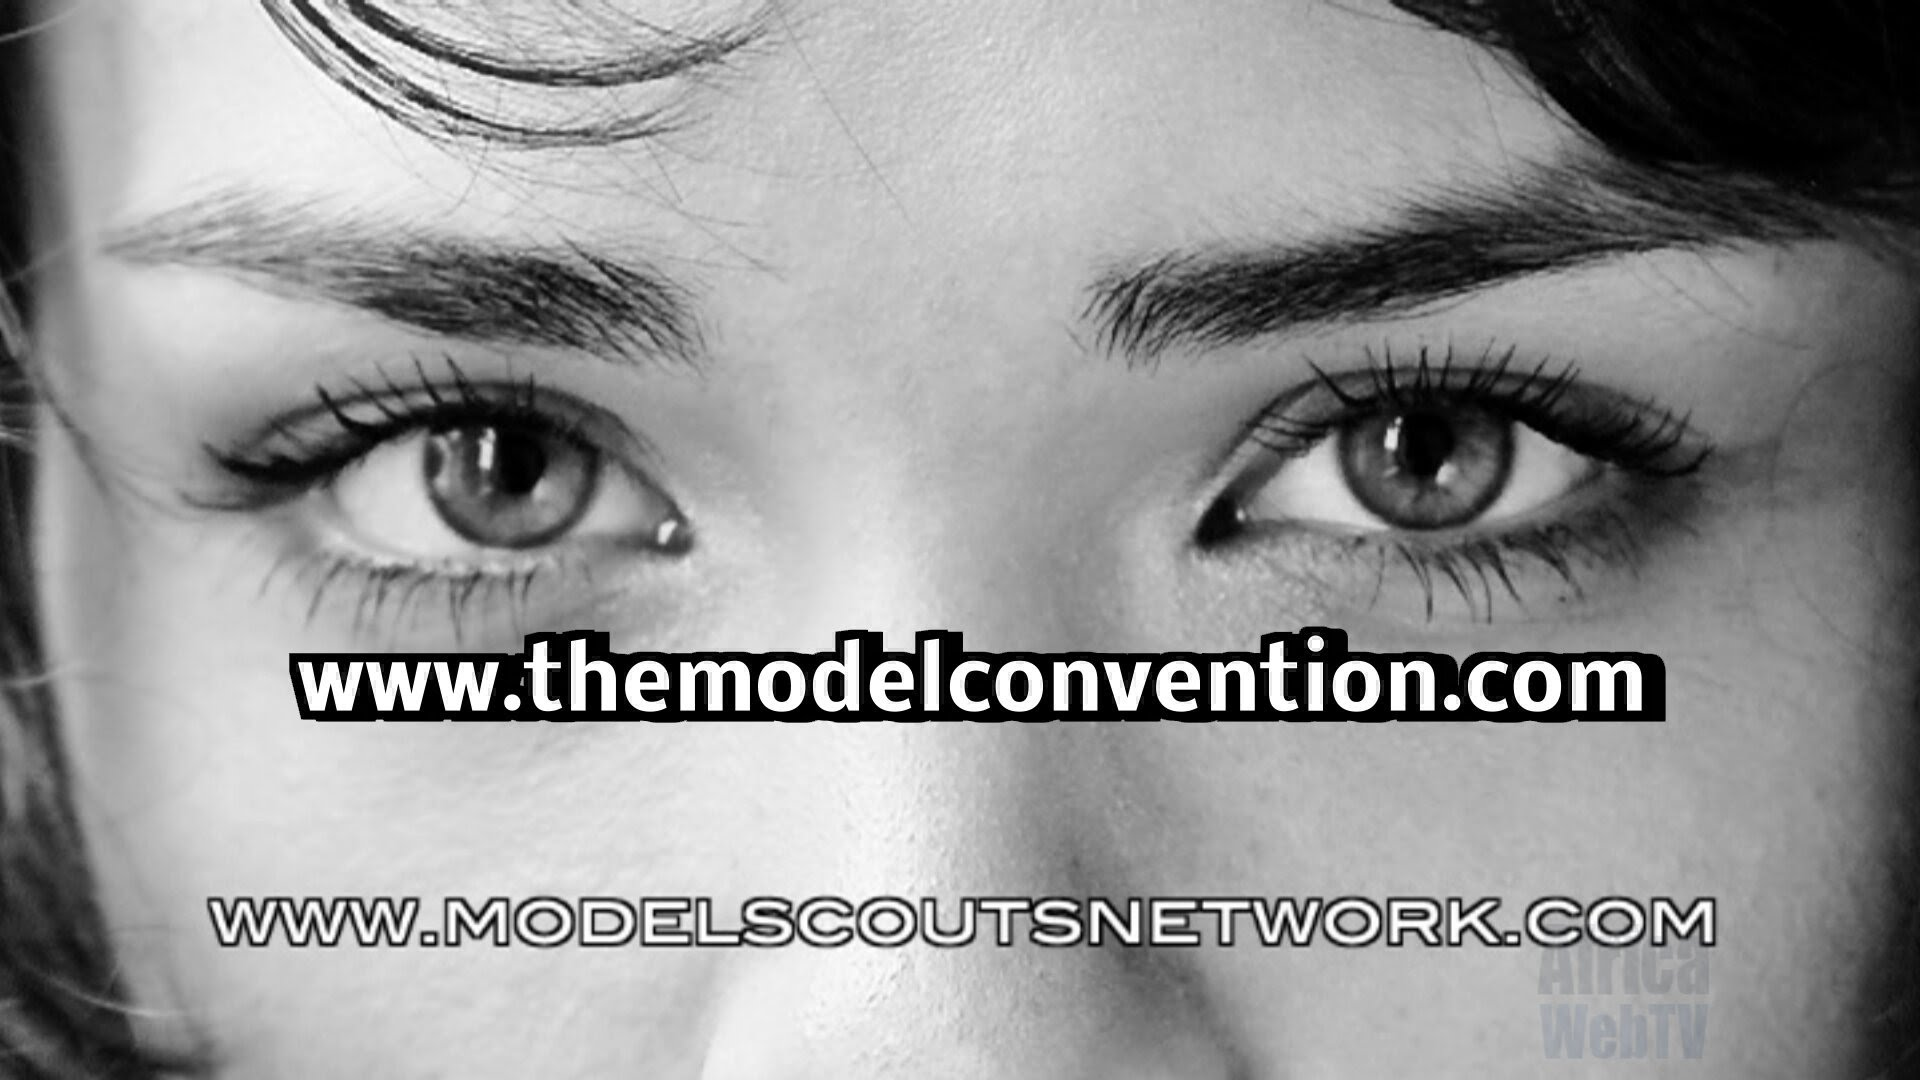 Model Convention Amsterdam 2013